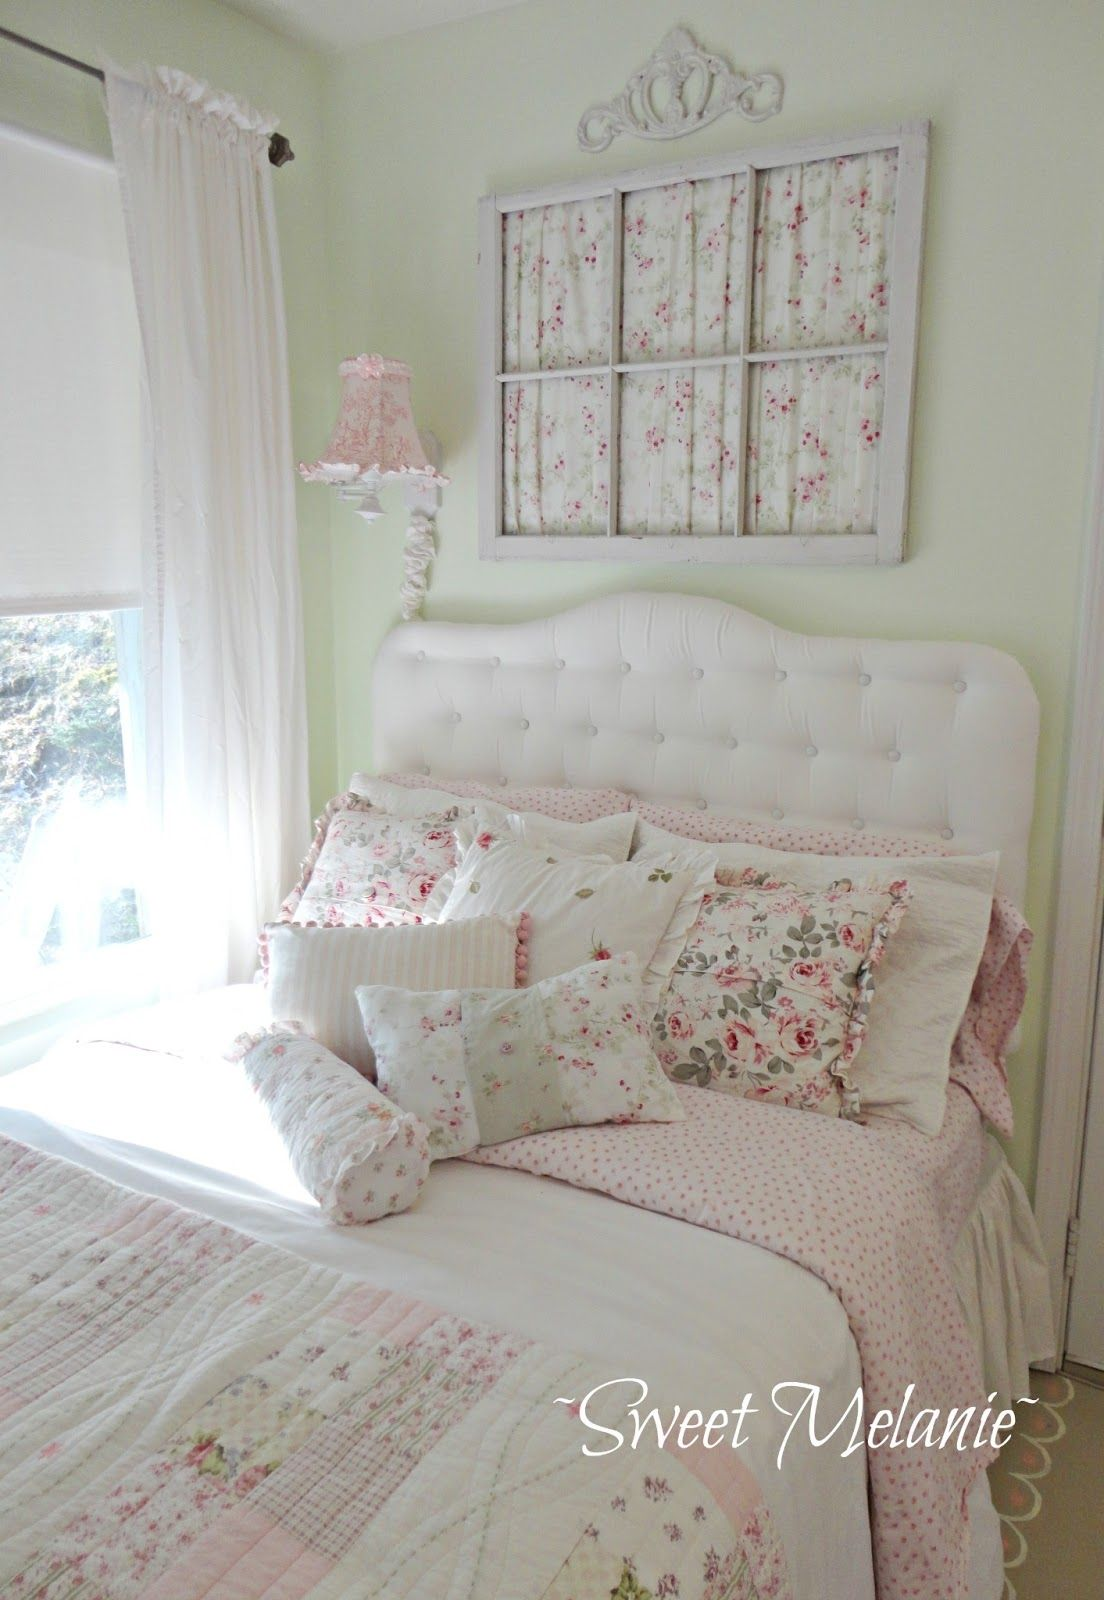 Bed with window behind it  sweet melanie a new bed for guests  cottages  pinterest  shabby